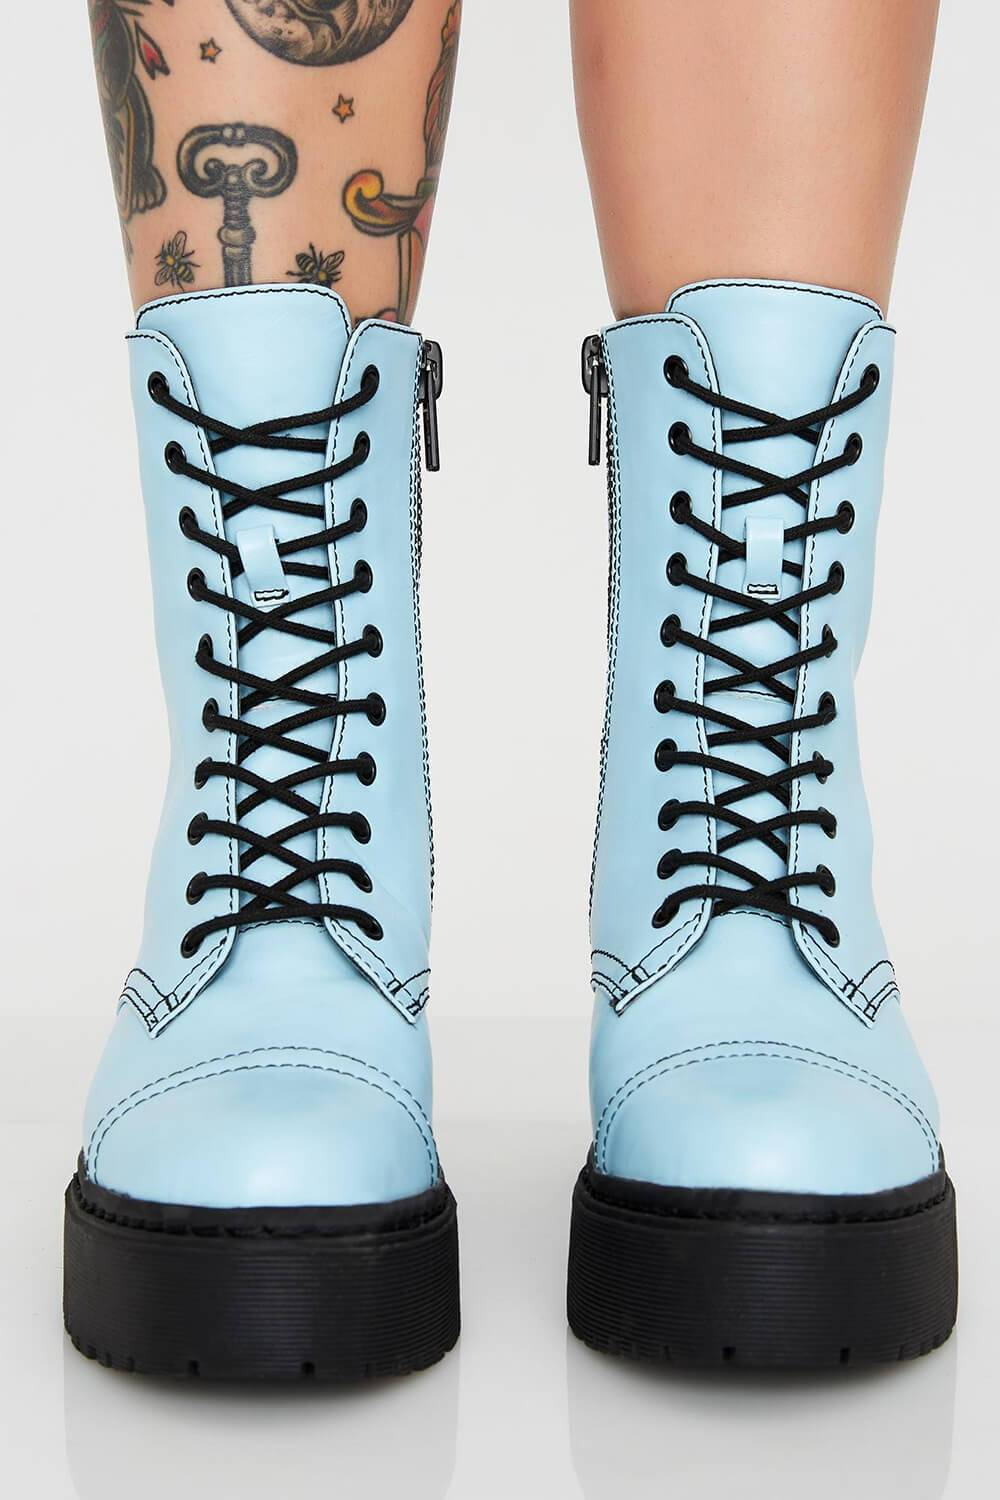 Neon Light Blue Patent Lace Up Platform Chunky Ankle Boots (4307981369403)